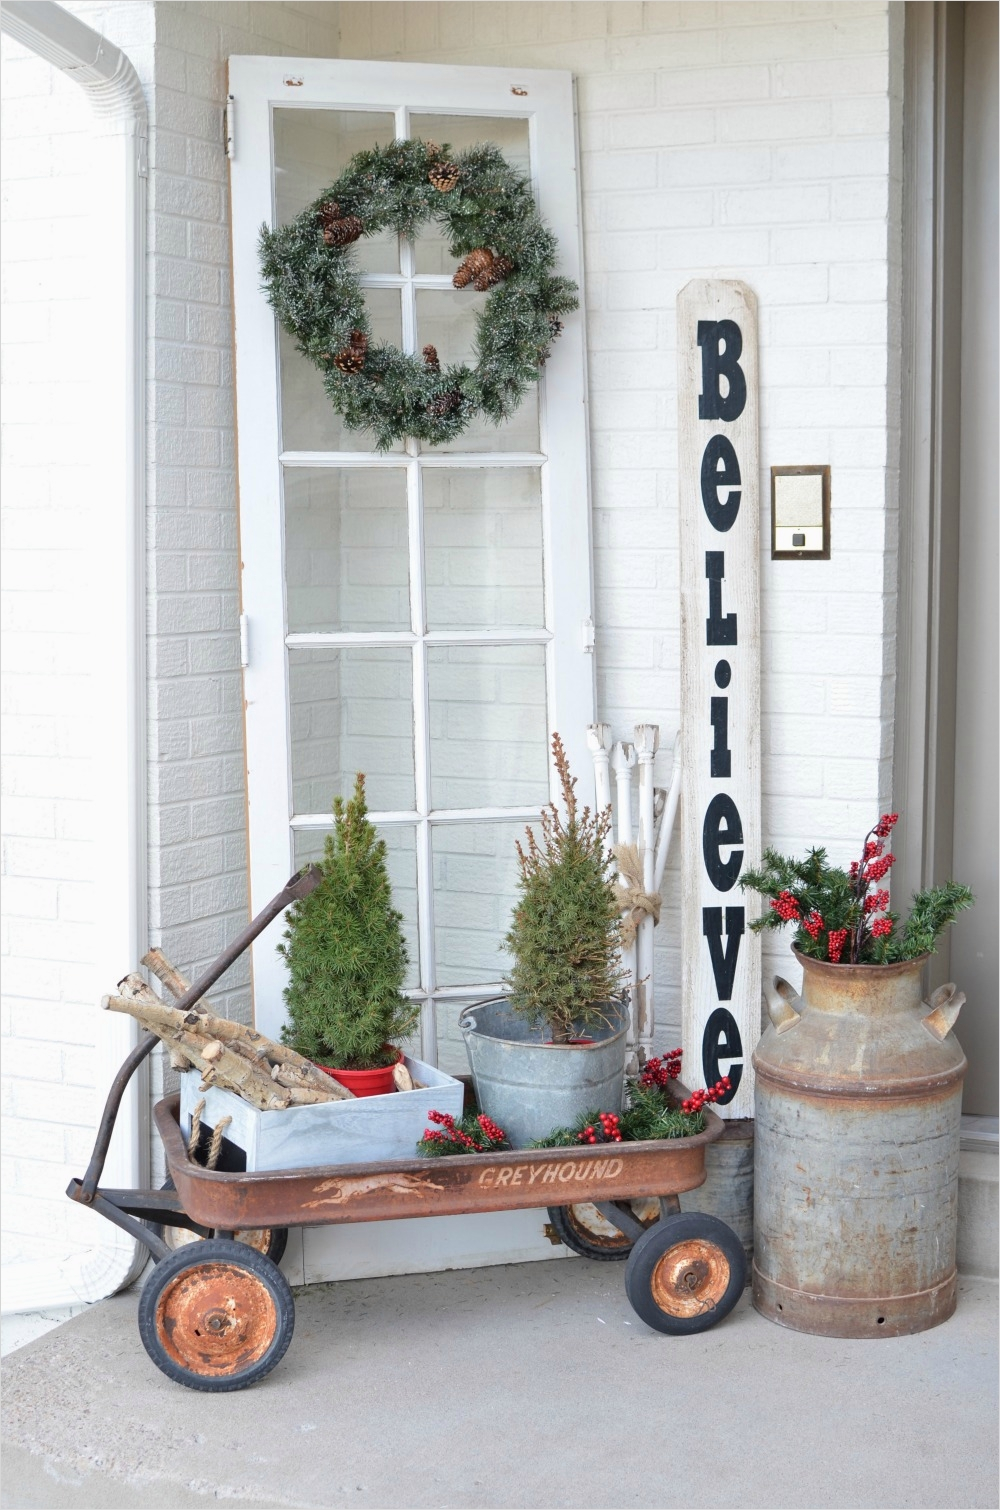 42 Beautiful Vintage Yard Decorating Ideas 62 Christmas On the Front Porch 8